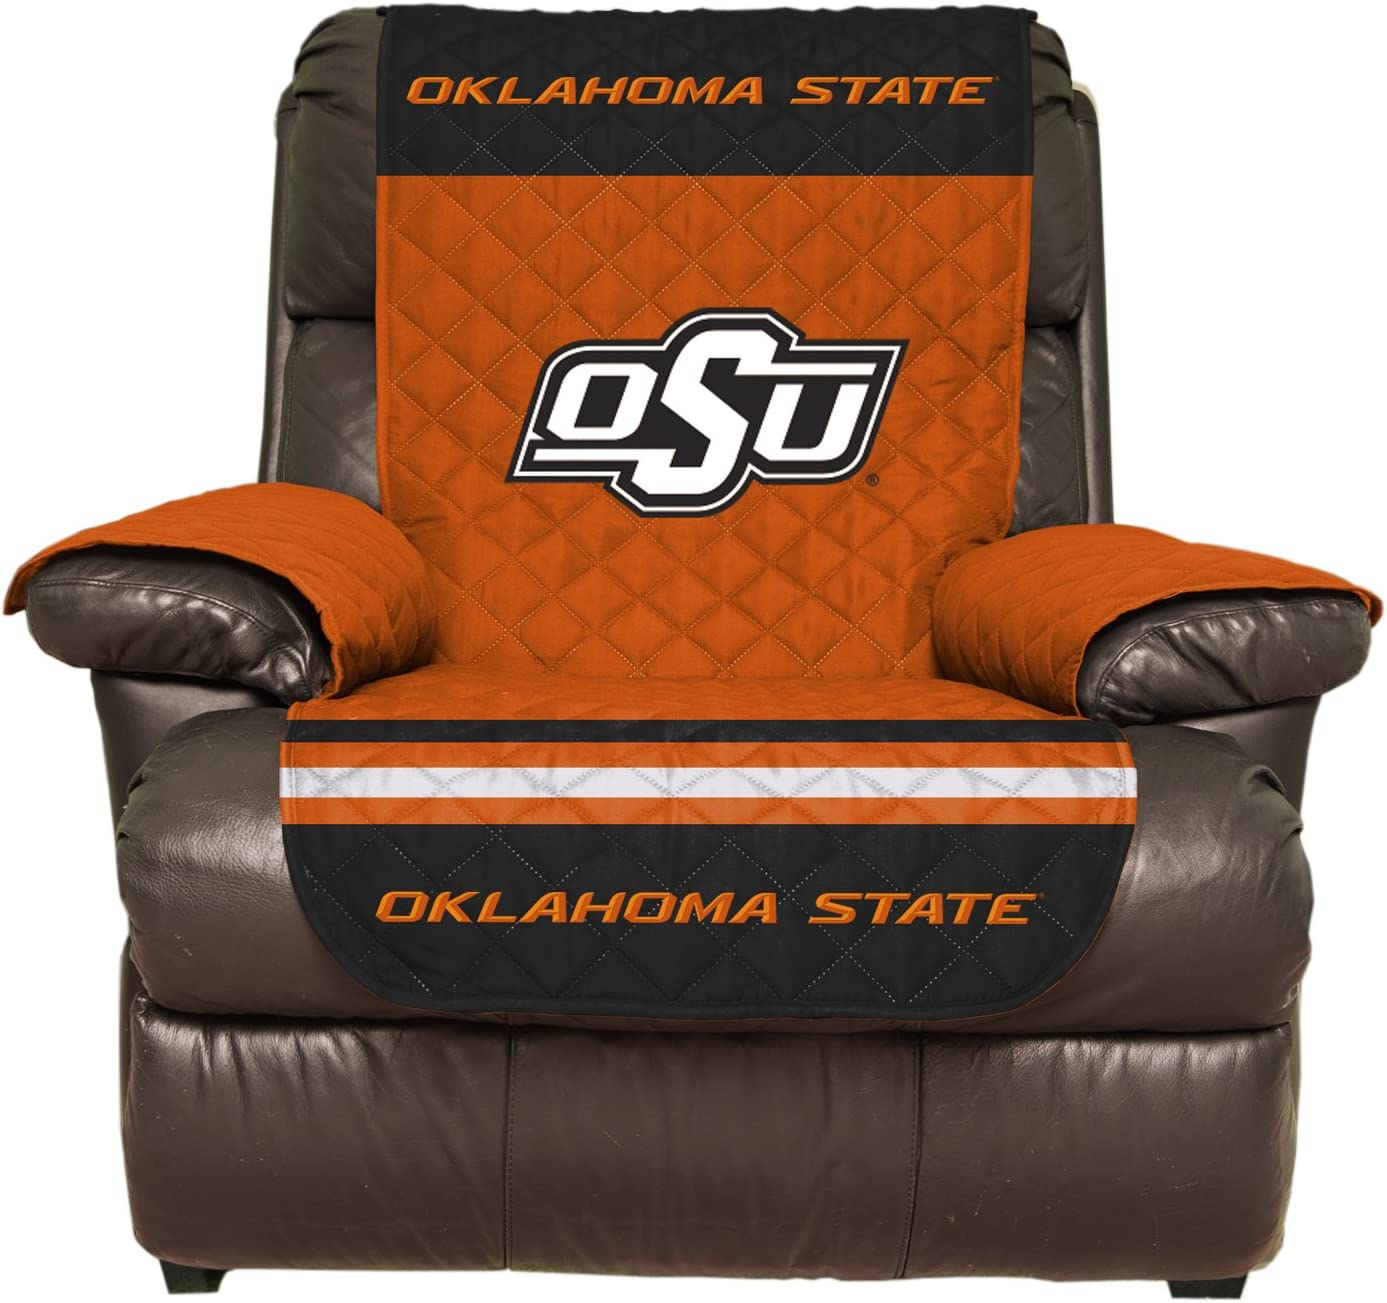 Reversible Couch Cover - College Team Sofa Slipcover Set / Furniture Protector - NCAA Officially Licensed  sc 1 st  Amazon.com & Shop Amazon.com | Sofa Slipcovers islam-shia.org